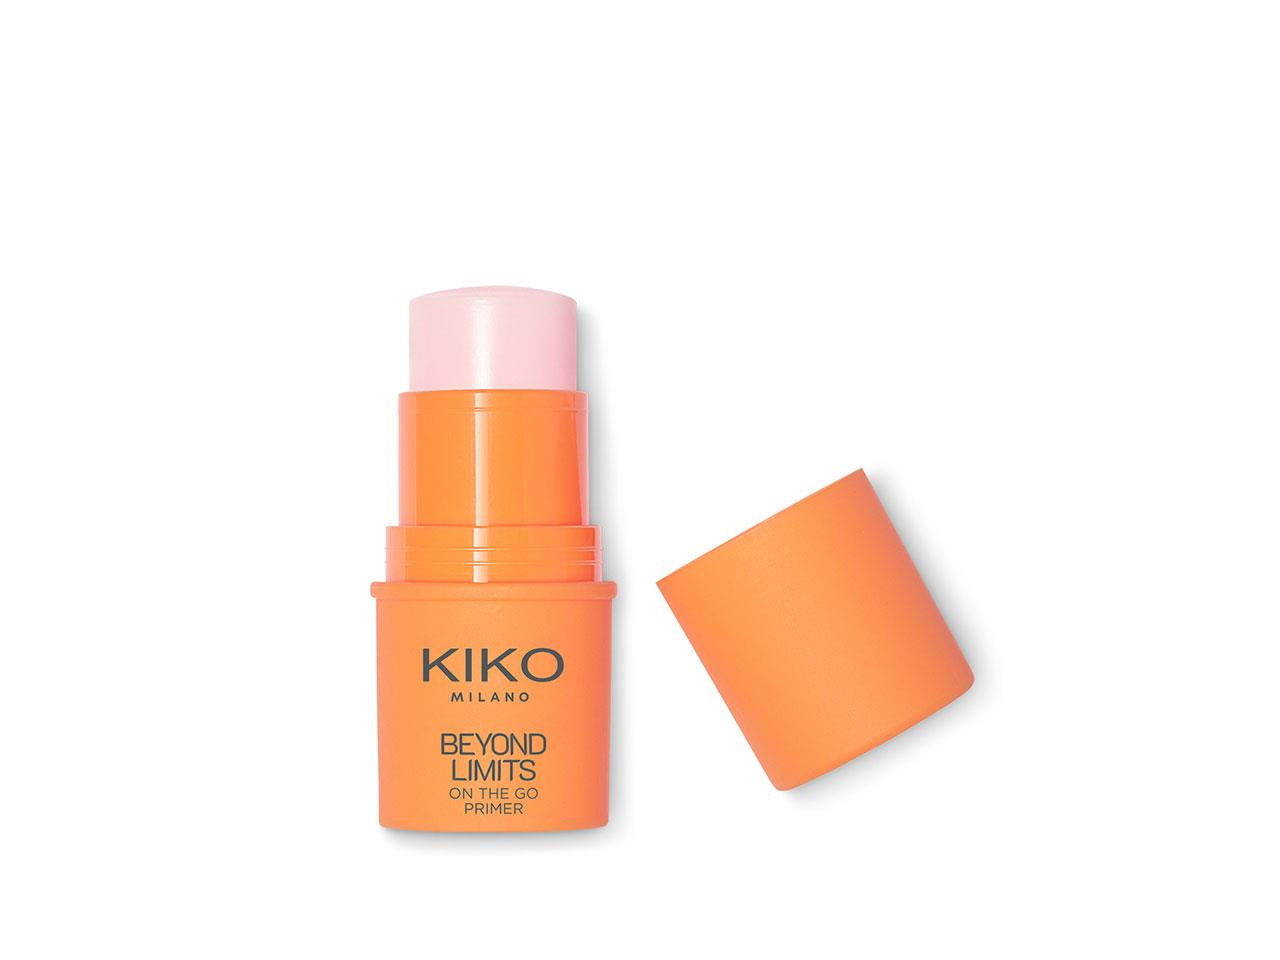 rebajas kiko milano Primer Beyond Limits On The Go de Kiko Milano, 3,50€ (antes 6,99€)